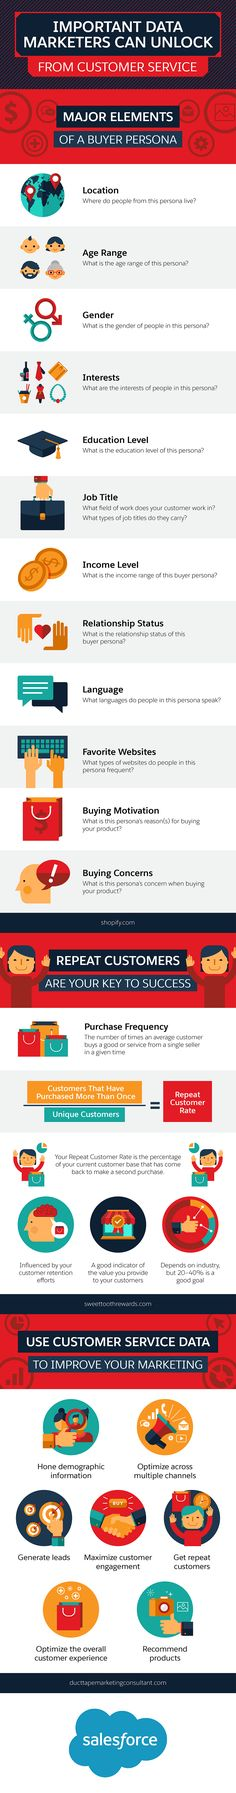 How To Understand Your Buyers Better - Infographic